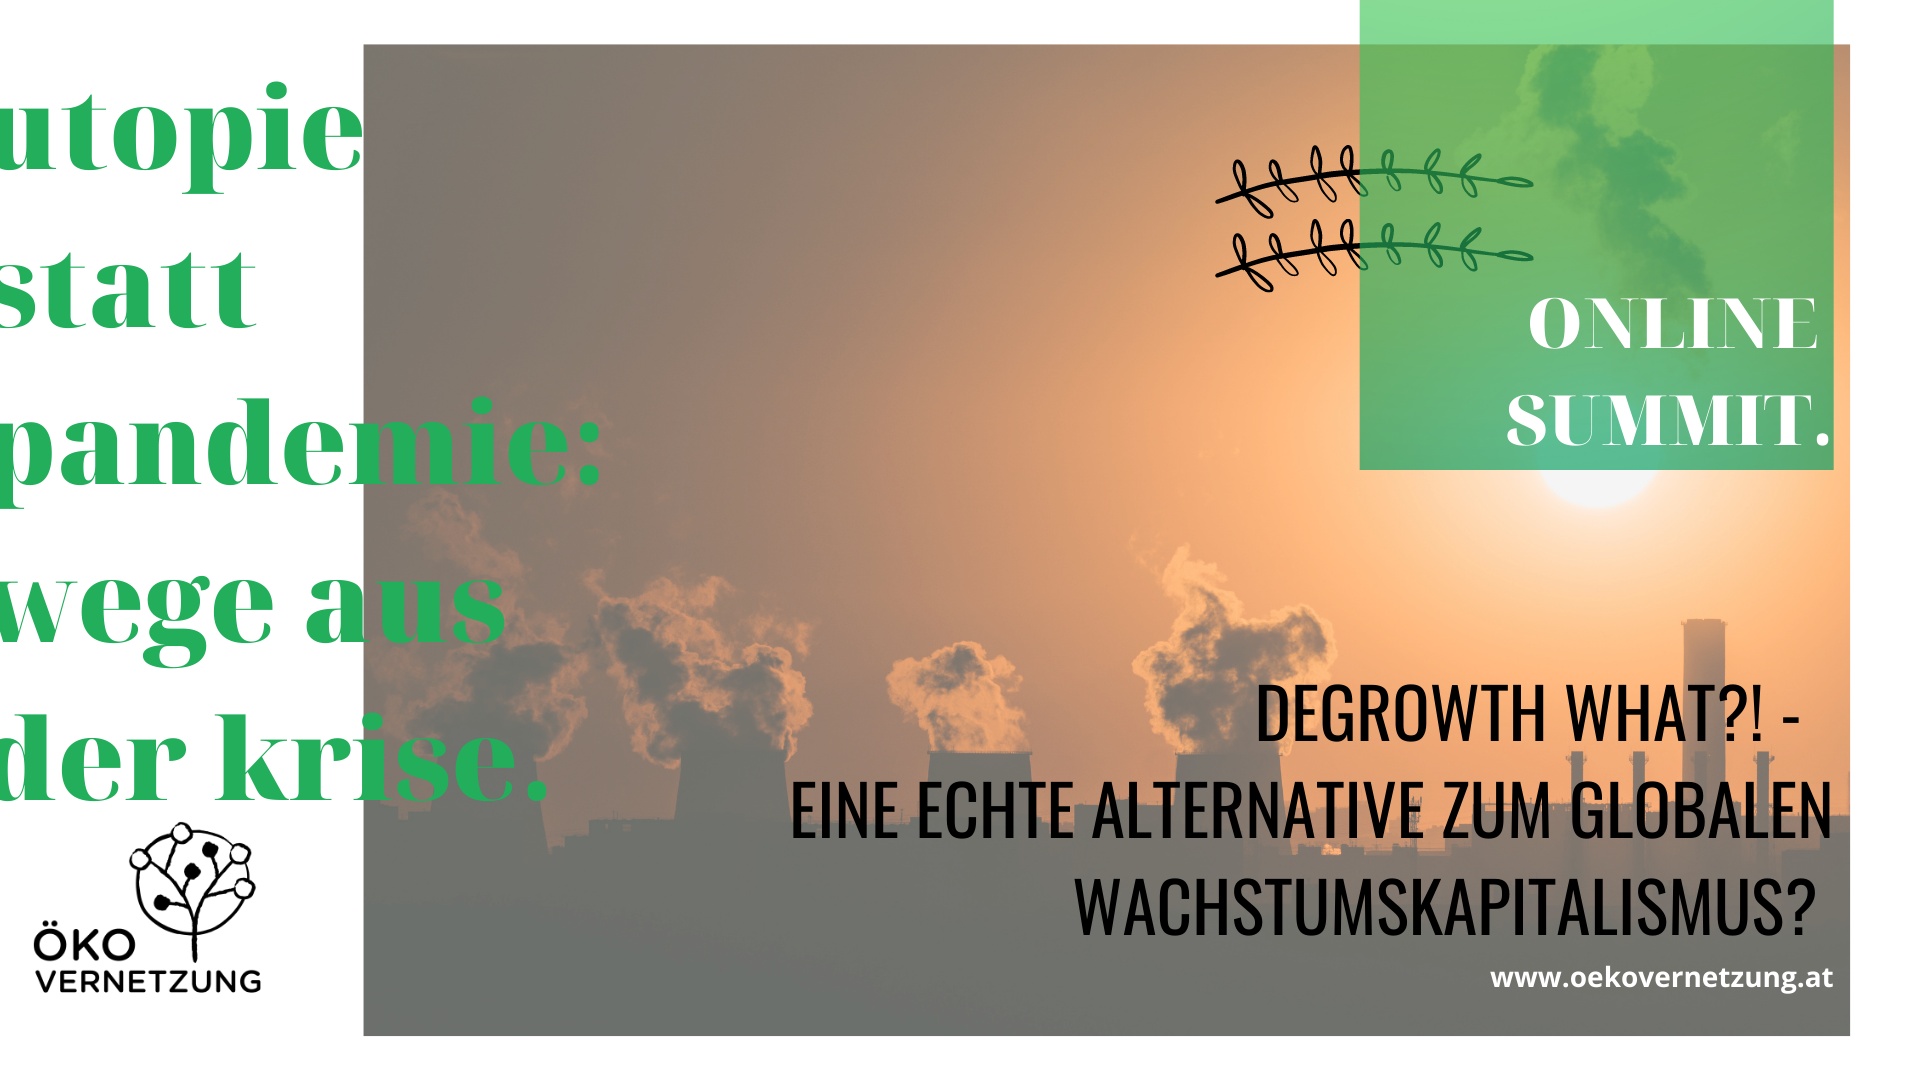 ONLINE SUMMIT 2021 – 2: DEGROWTH WHAT?! – Alternativen zum Kapitalismus?